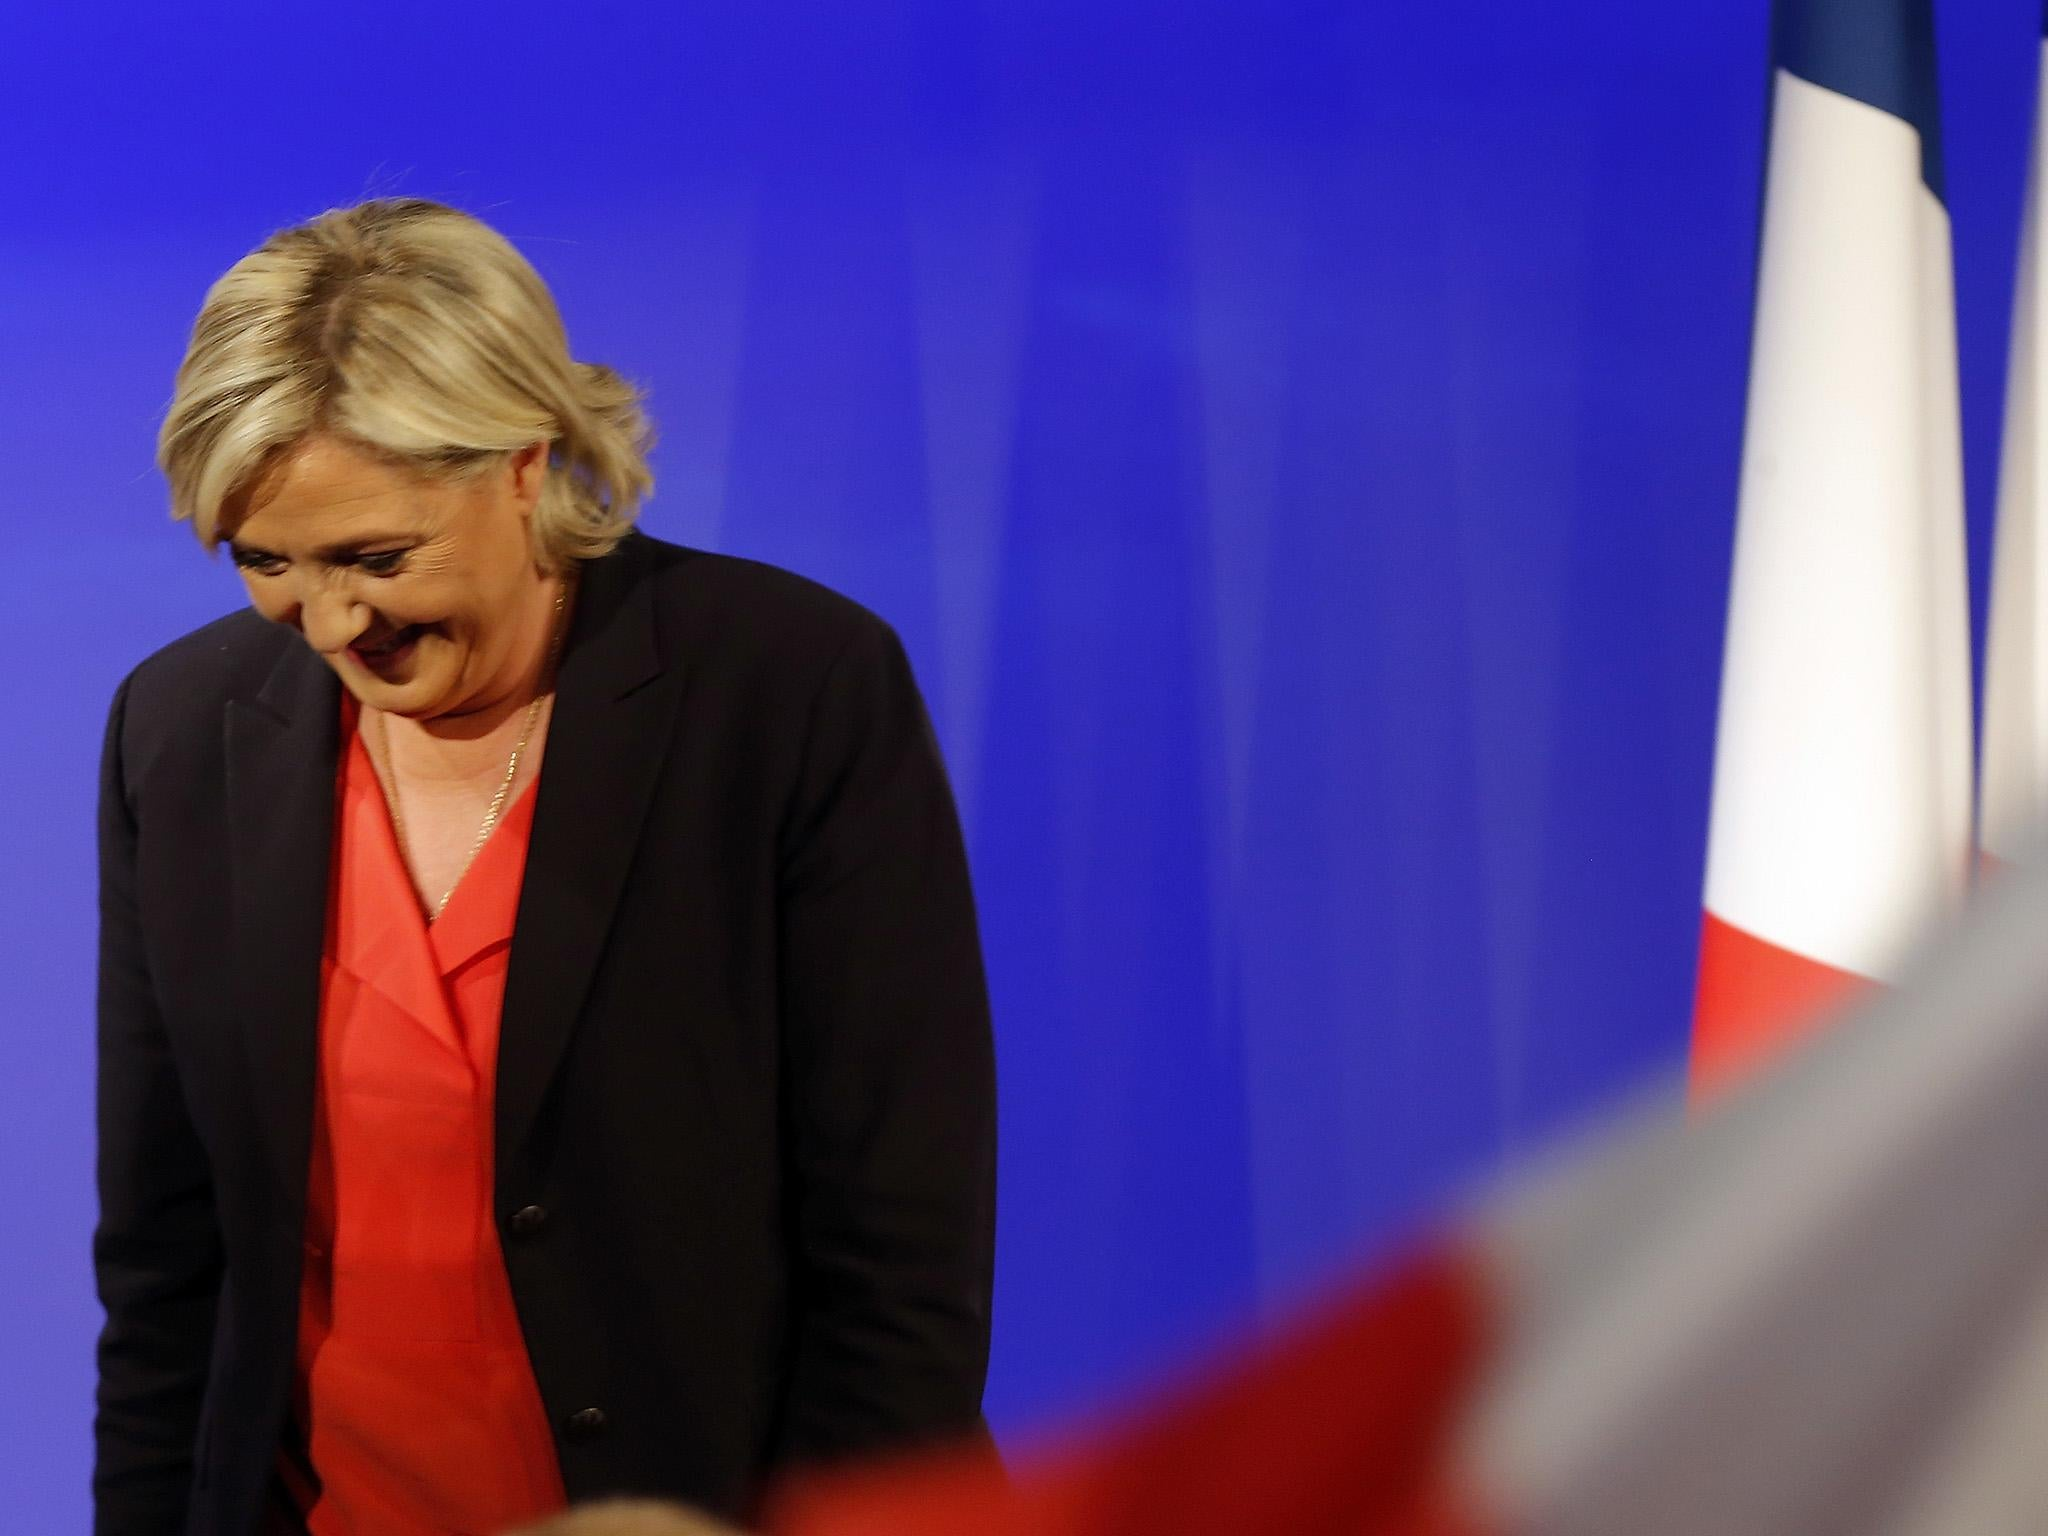 French media outlets denied access to Marine Le Pen ...